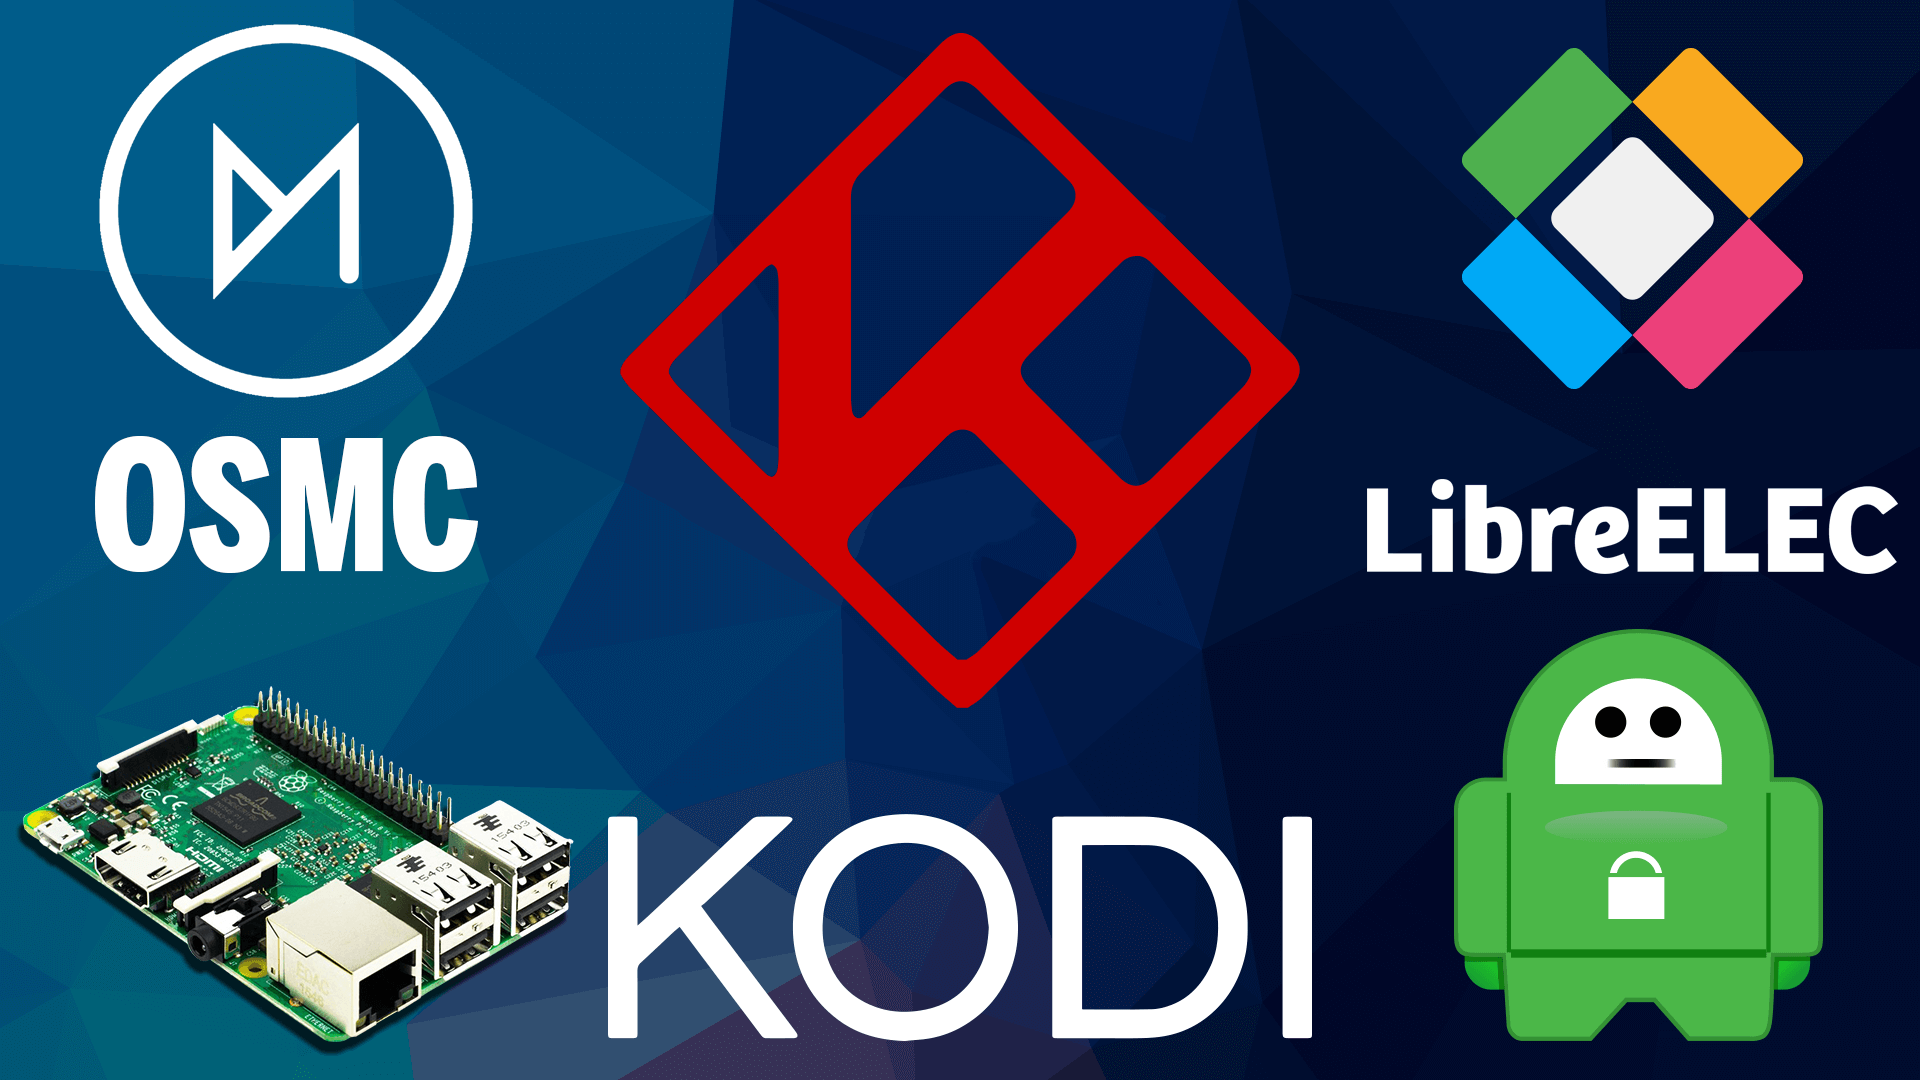 Setup Kodi OSMC & LibreELEC VPN on Raspberry Pi 3 with Private Internet Access using OpenVPN Exodus